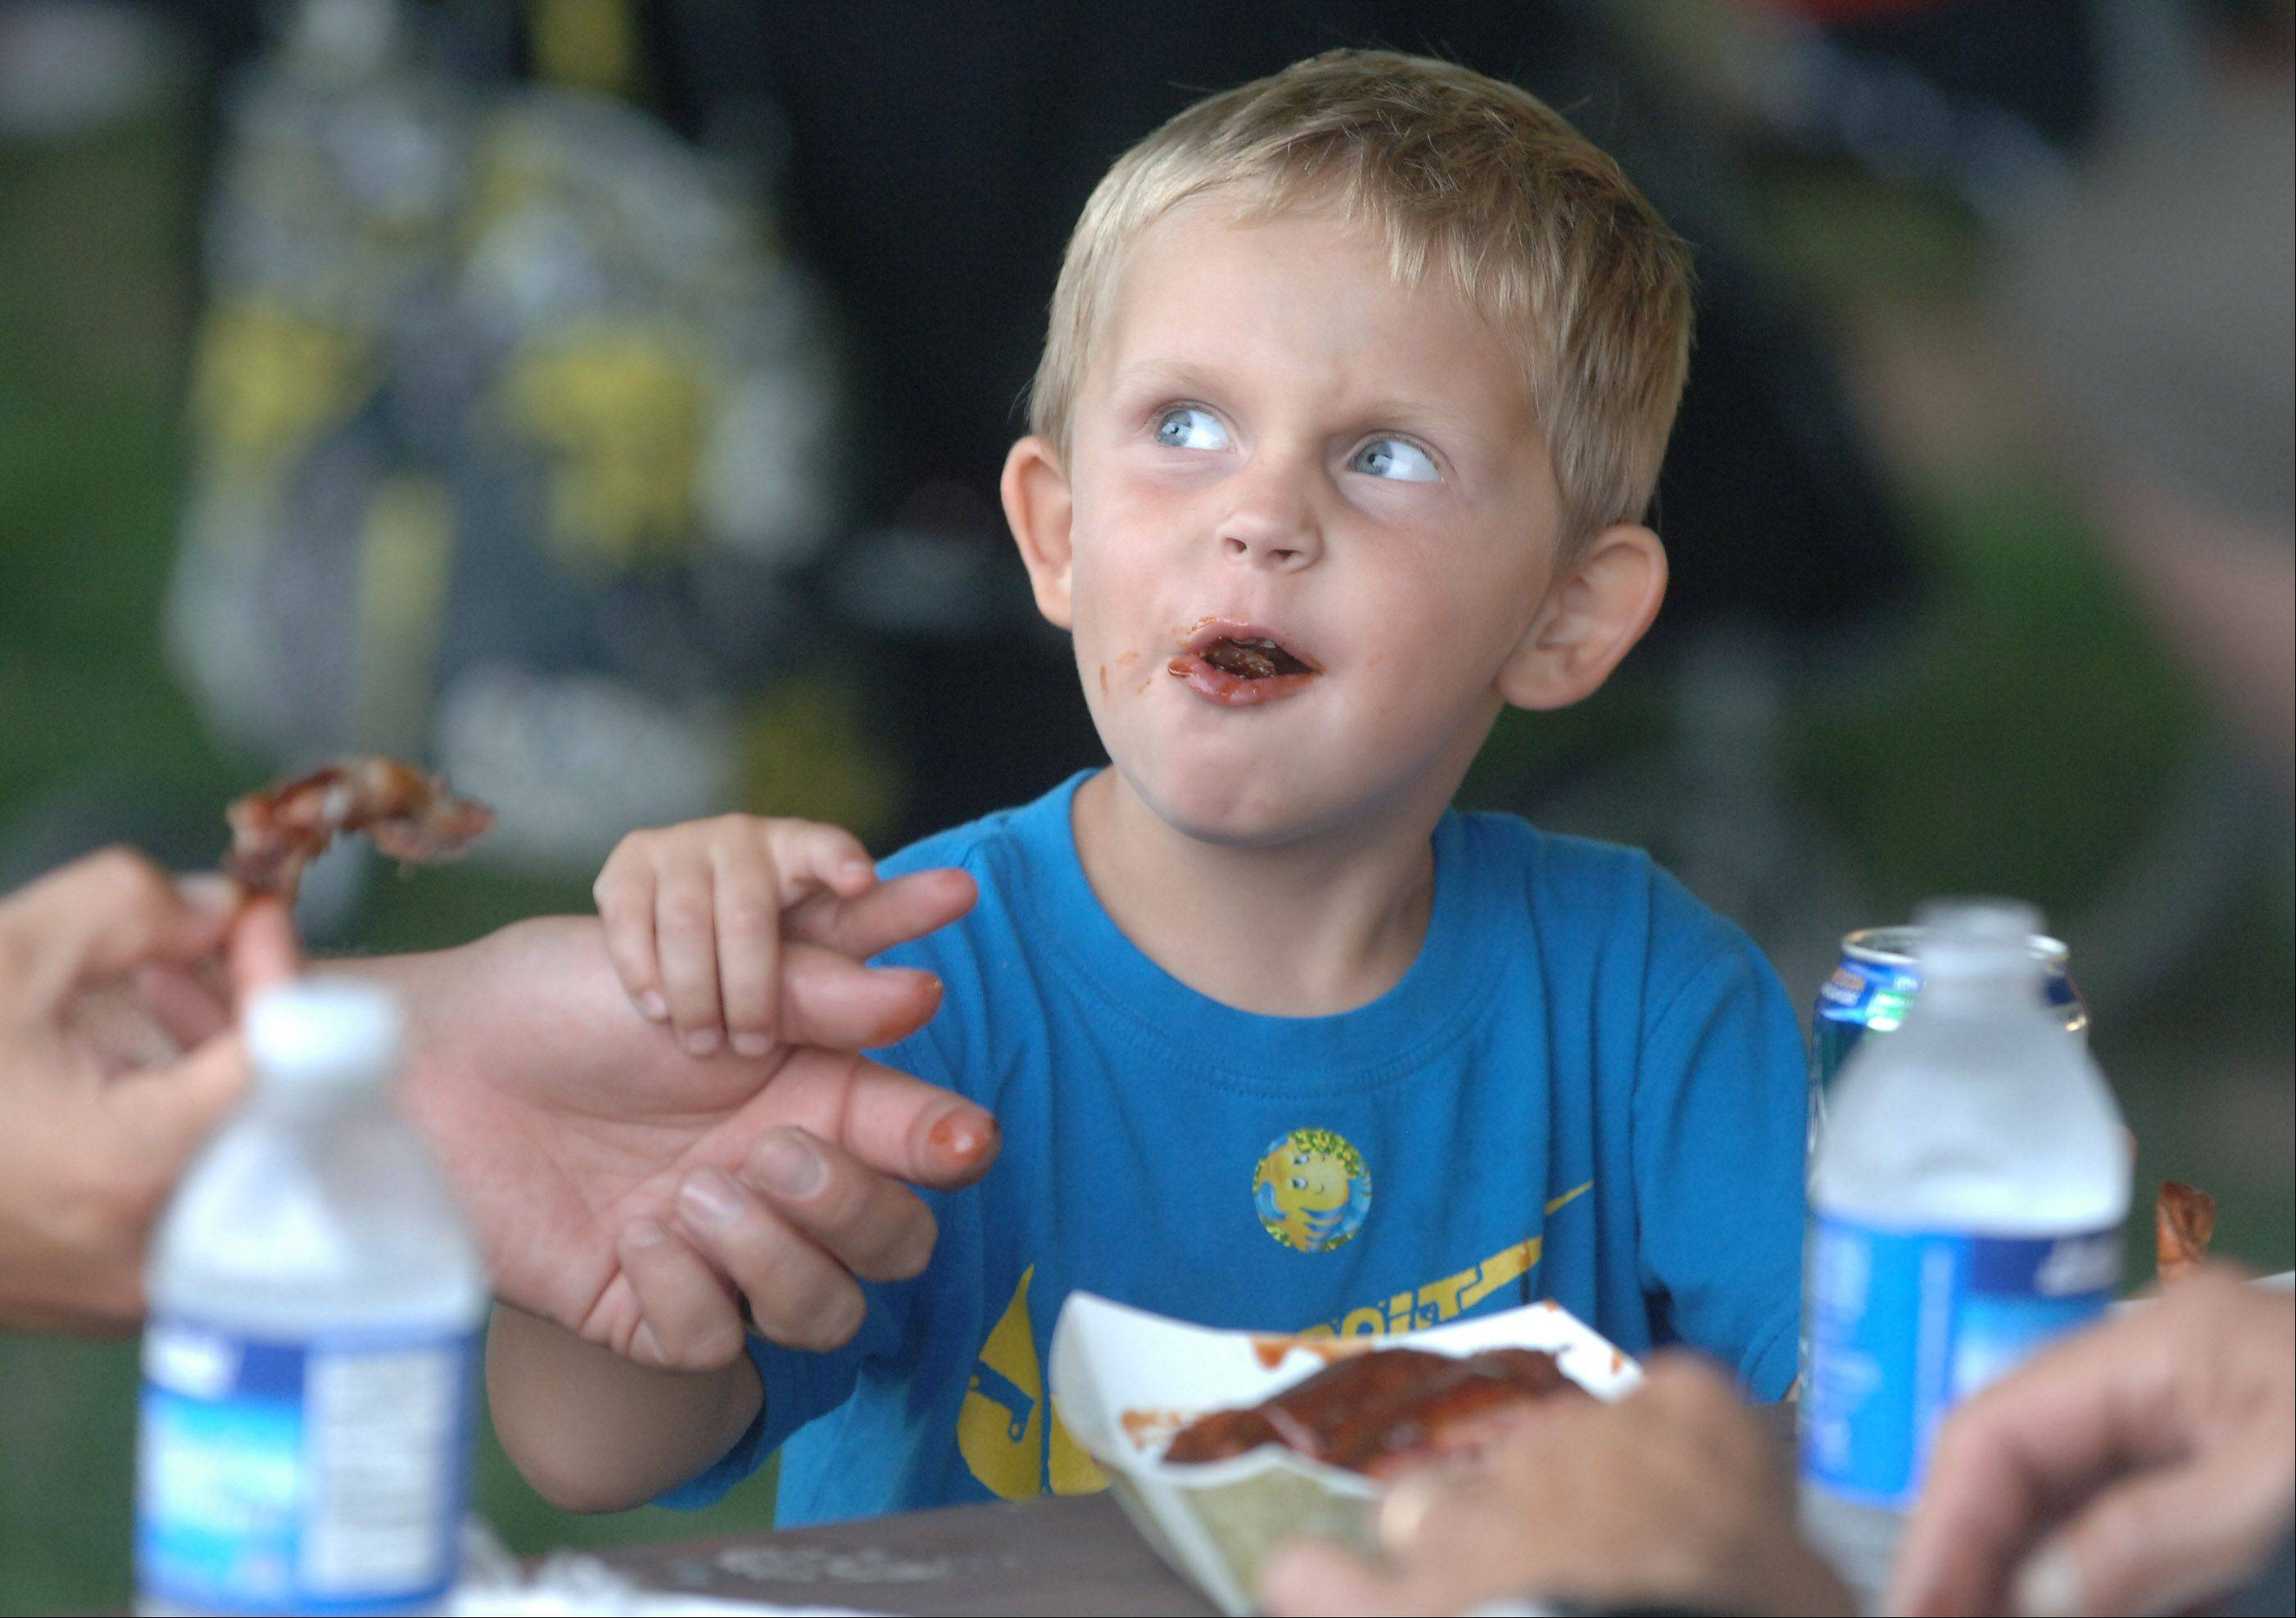 Thorsten Papak, 4 of Vernon Hills, enjoys ribs with his dad, Ryan Papak, during the inaugural Little Bear Ribfest Friday in Vernon Hills at Century Park.